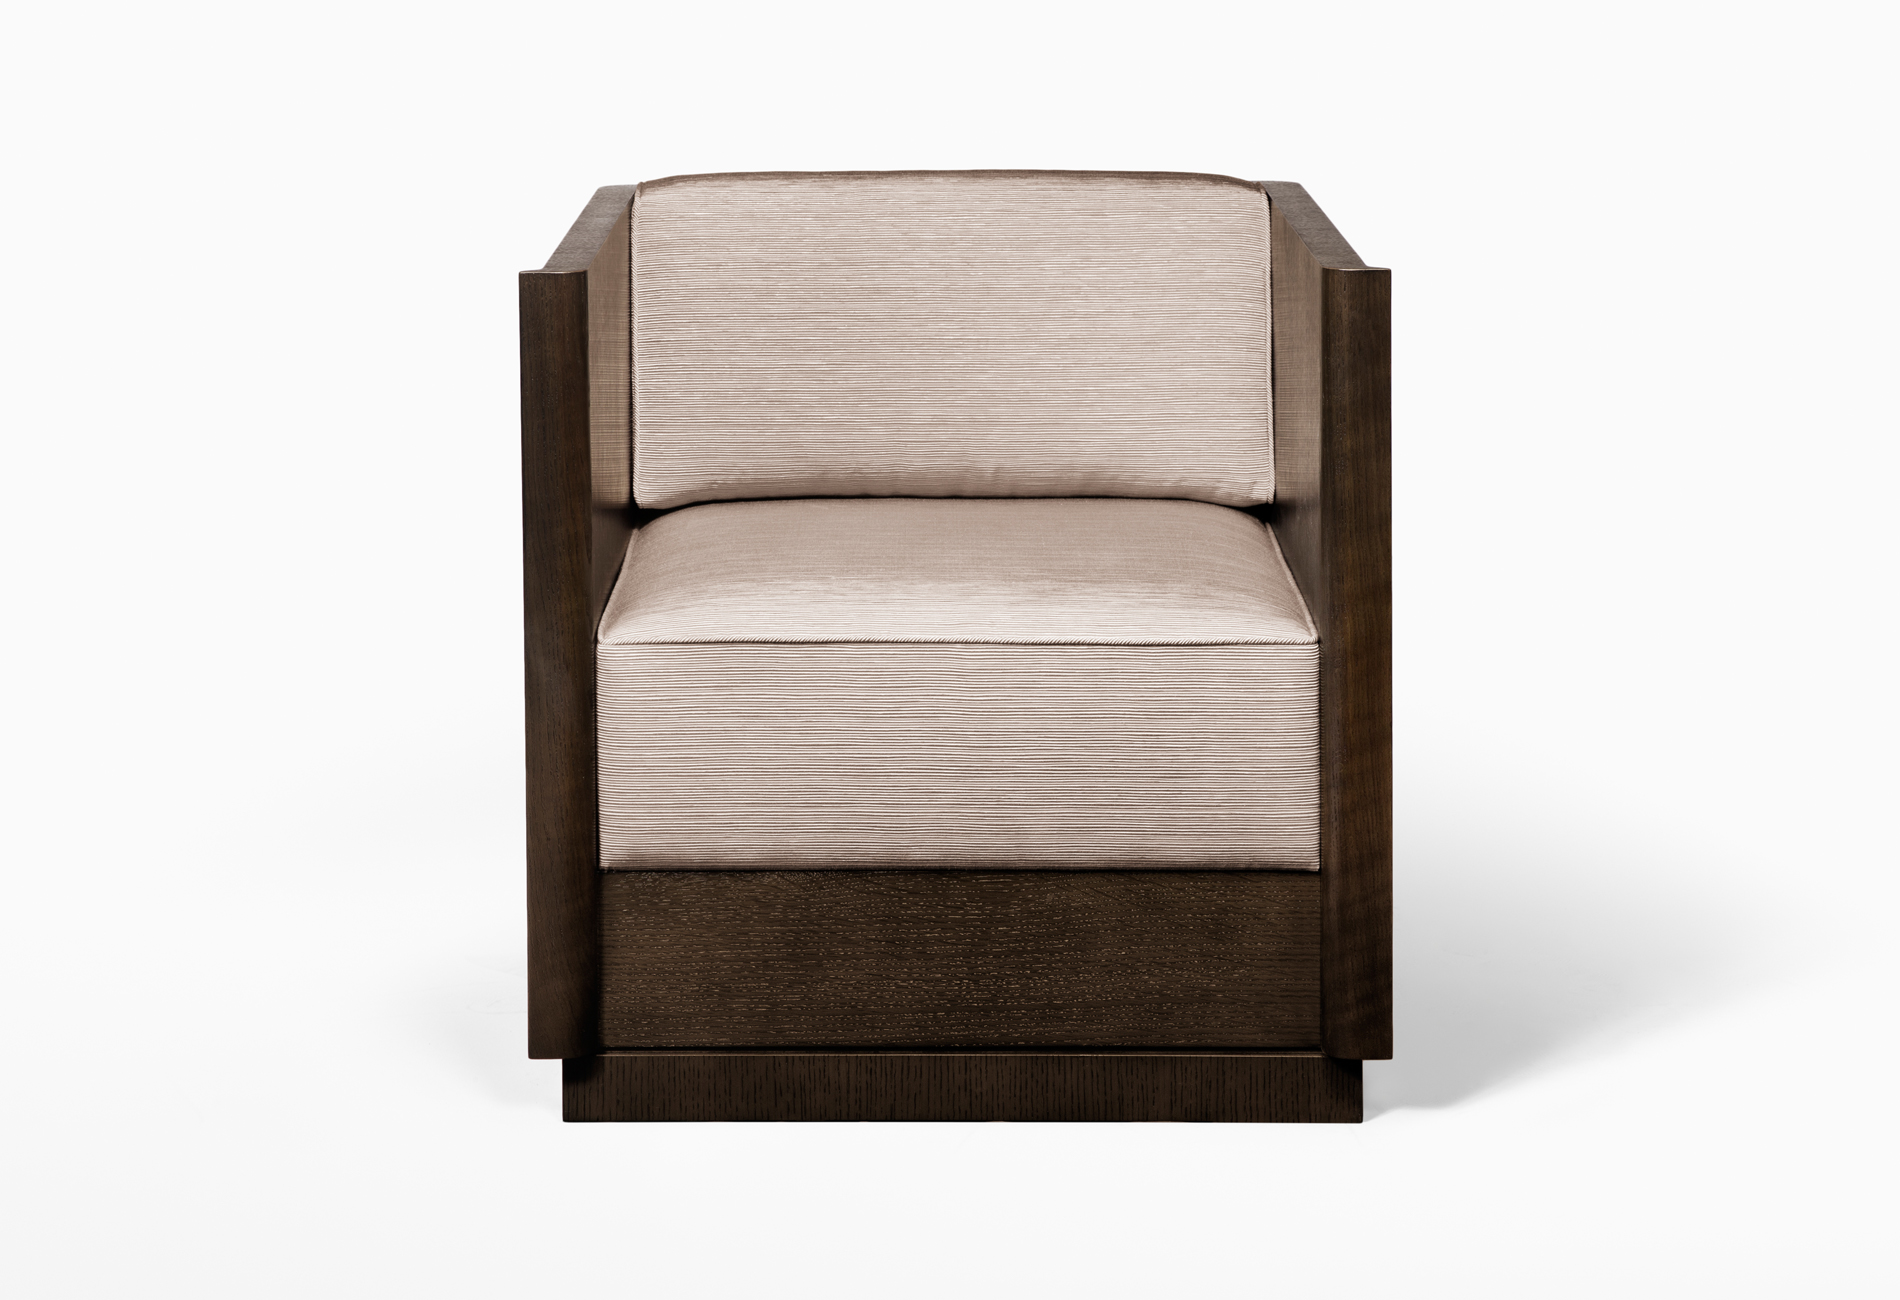 CMS Trianon Lounge Chair (11).jpg